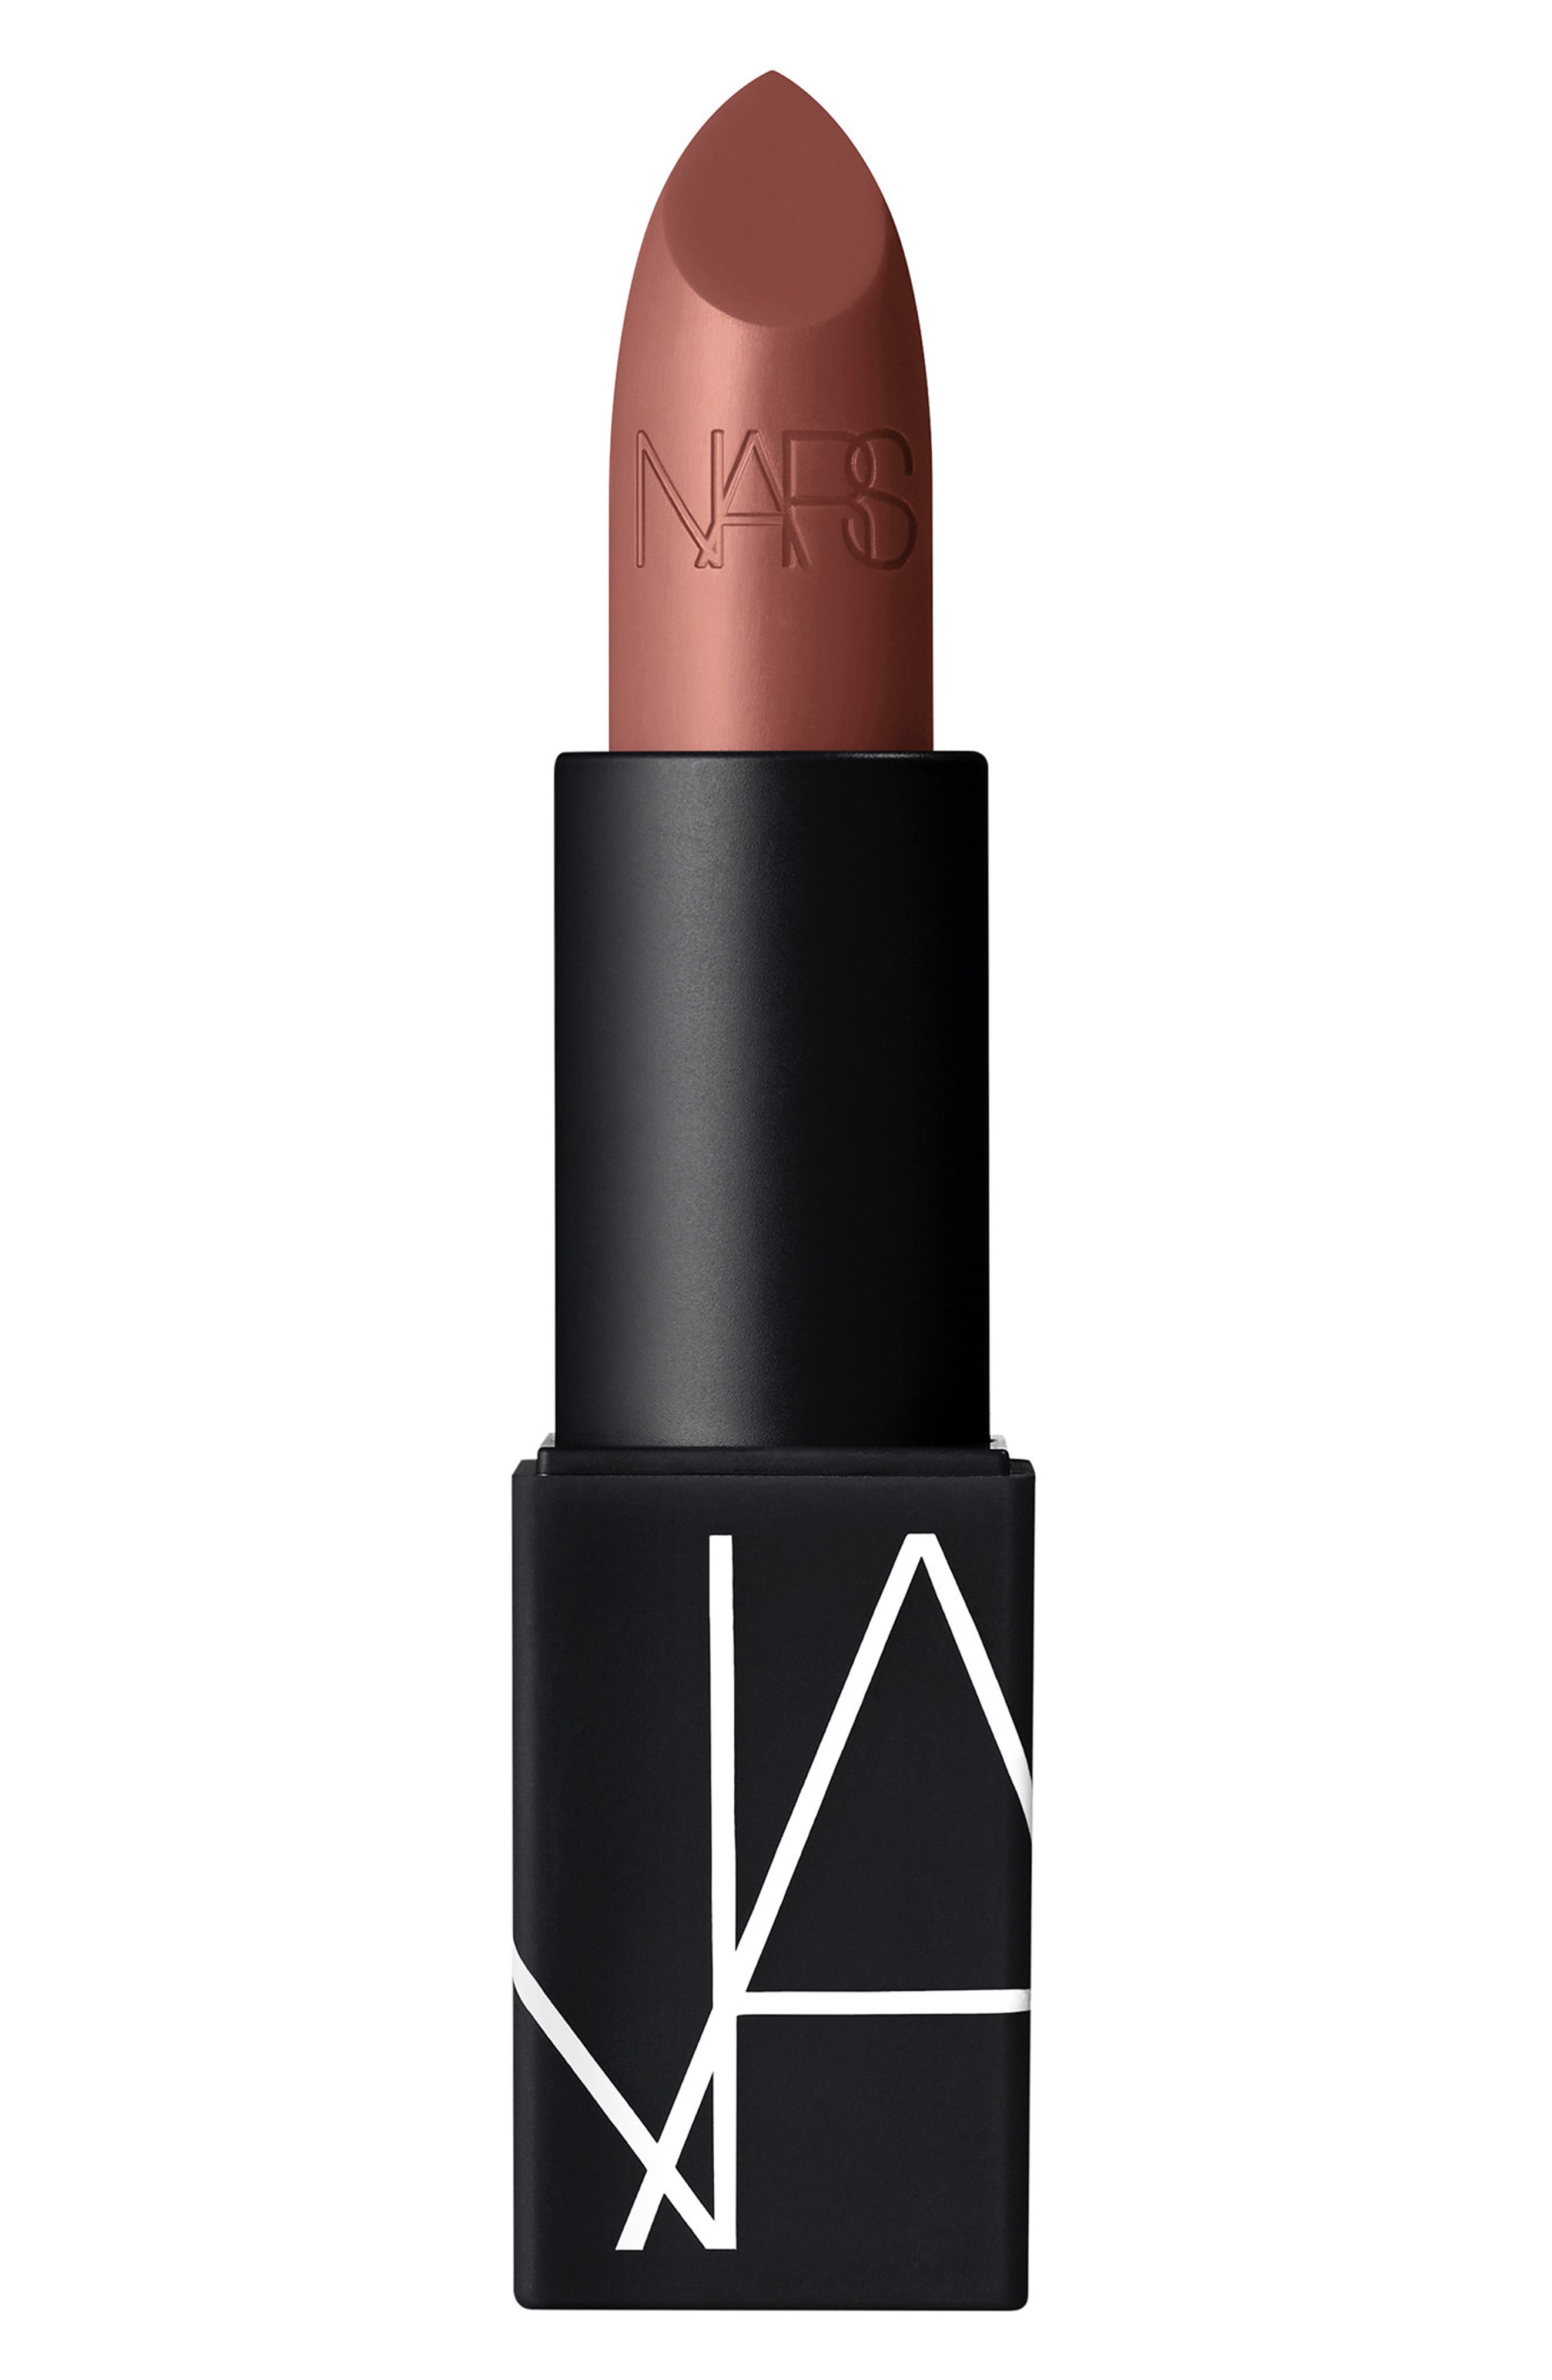 What it is: A lipstick with an intense, velvety matte finish that offers instant color vibrancy and conditions lips for radically lightweight wear. What it does: This lipstick is formulated with a dynamic blend of moringa and passionfruit seed oils to enhance color vibrancy and condition lips for radically lightweight wear and an unprecedented feel. Its long-lasting color is resistant to bleed and feathering, while enhanced pigment dispersion